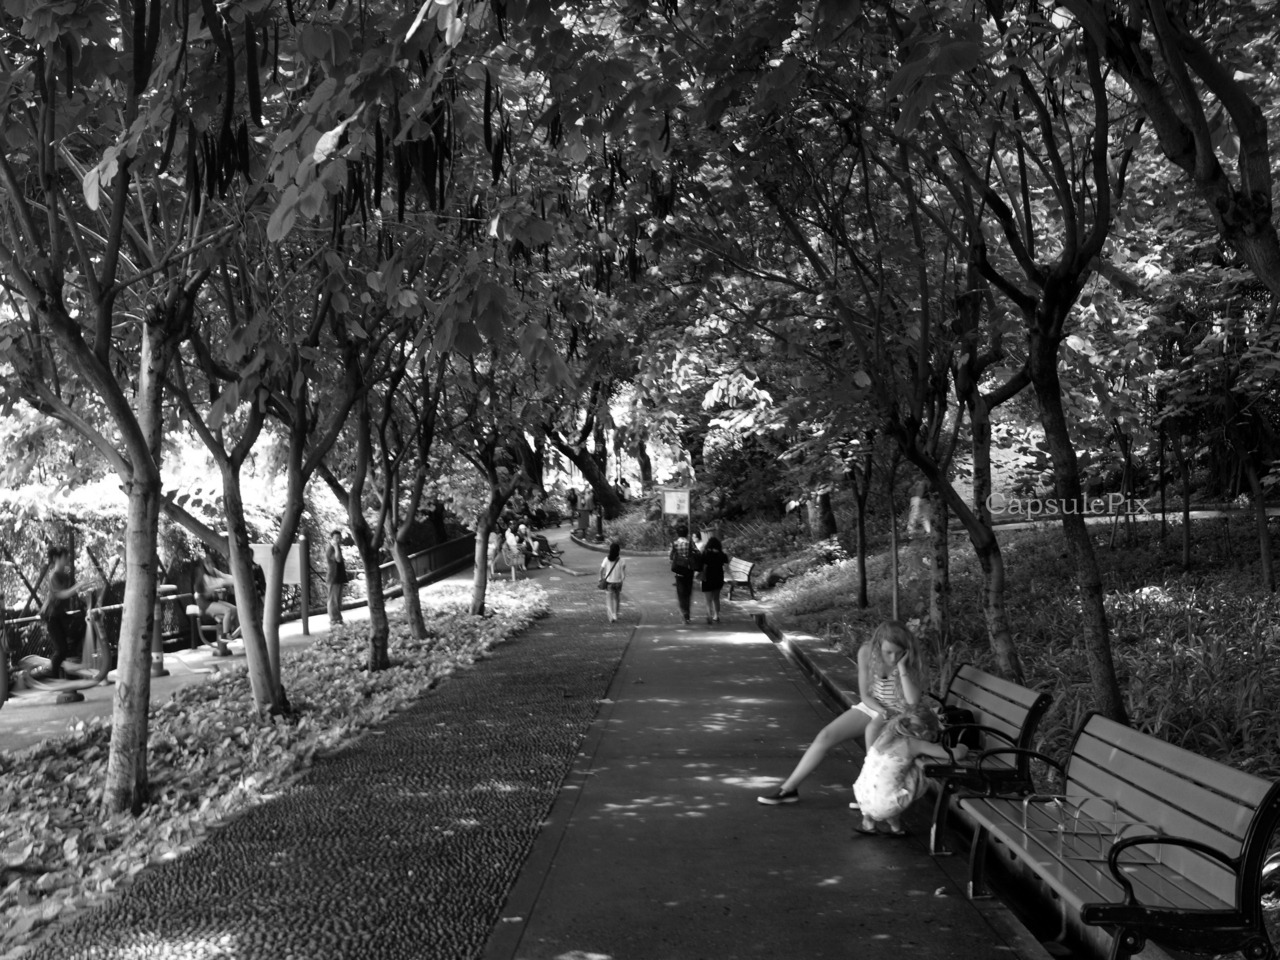 People in the park..@Mount Fortress Garden, Macau